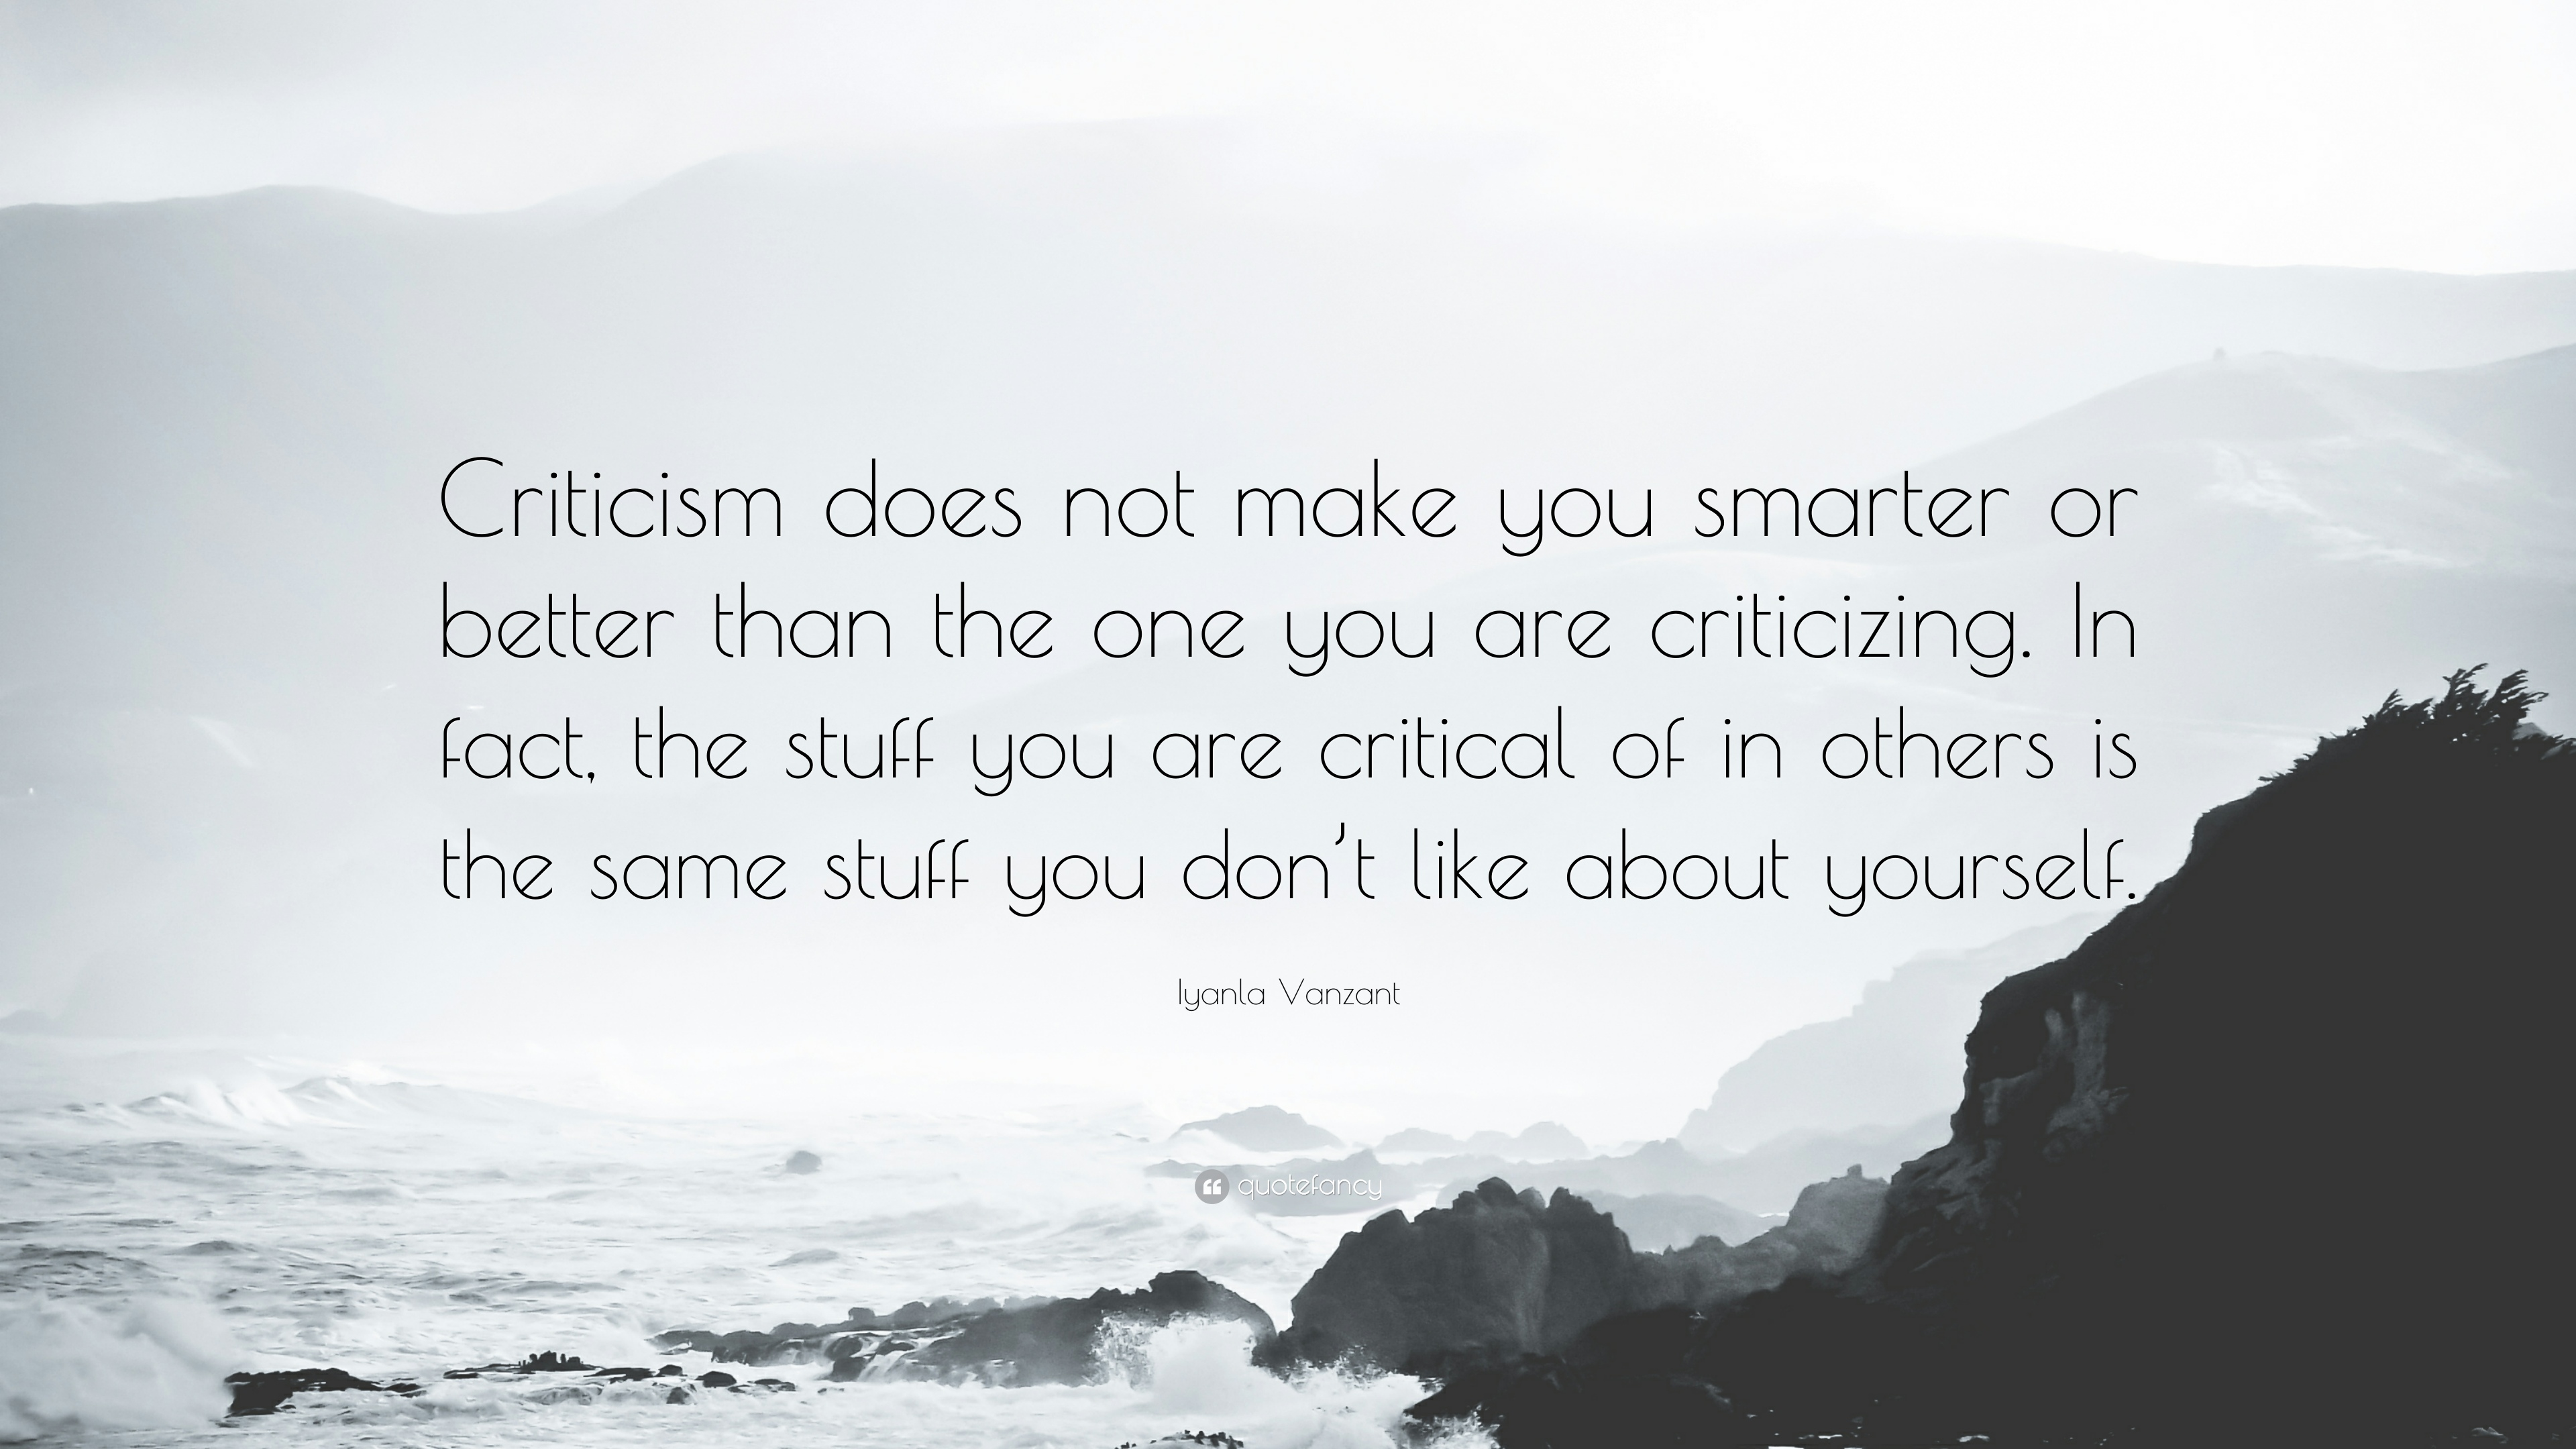 Criticism Quotes | Iyanla Vanzant Quote Criticism Does Not Make You Smarter Or Better